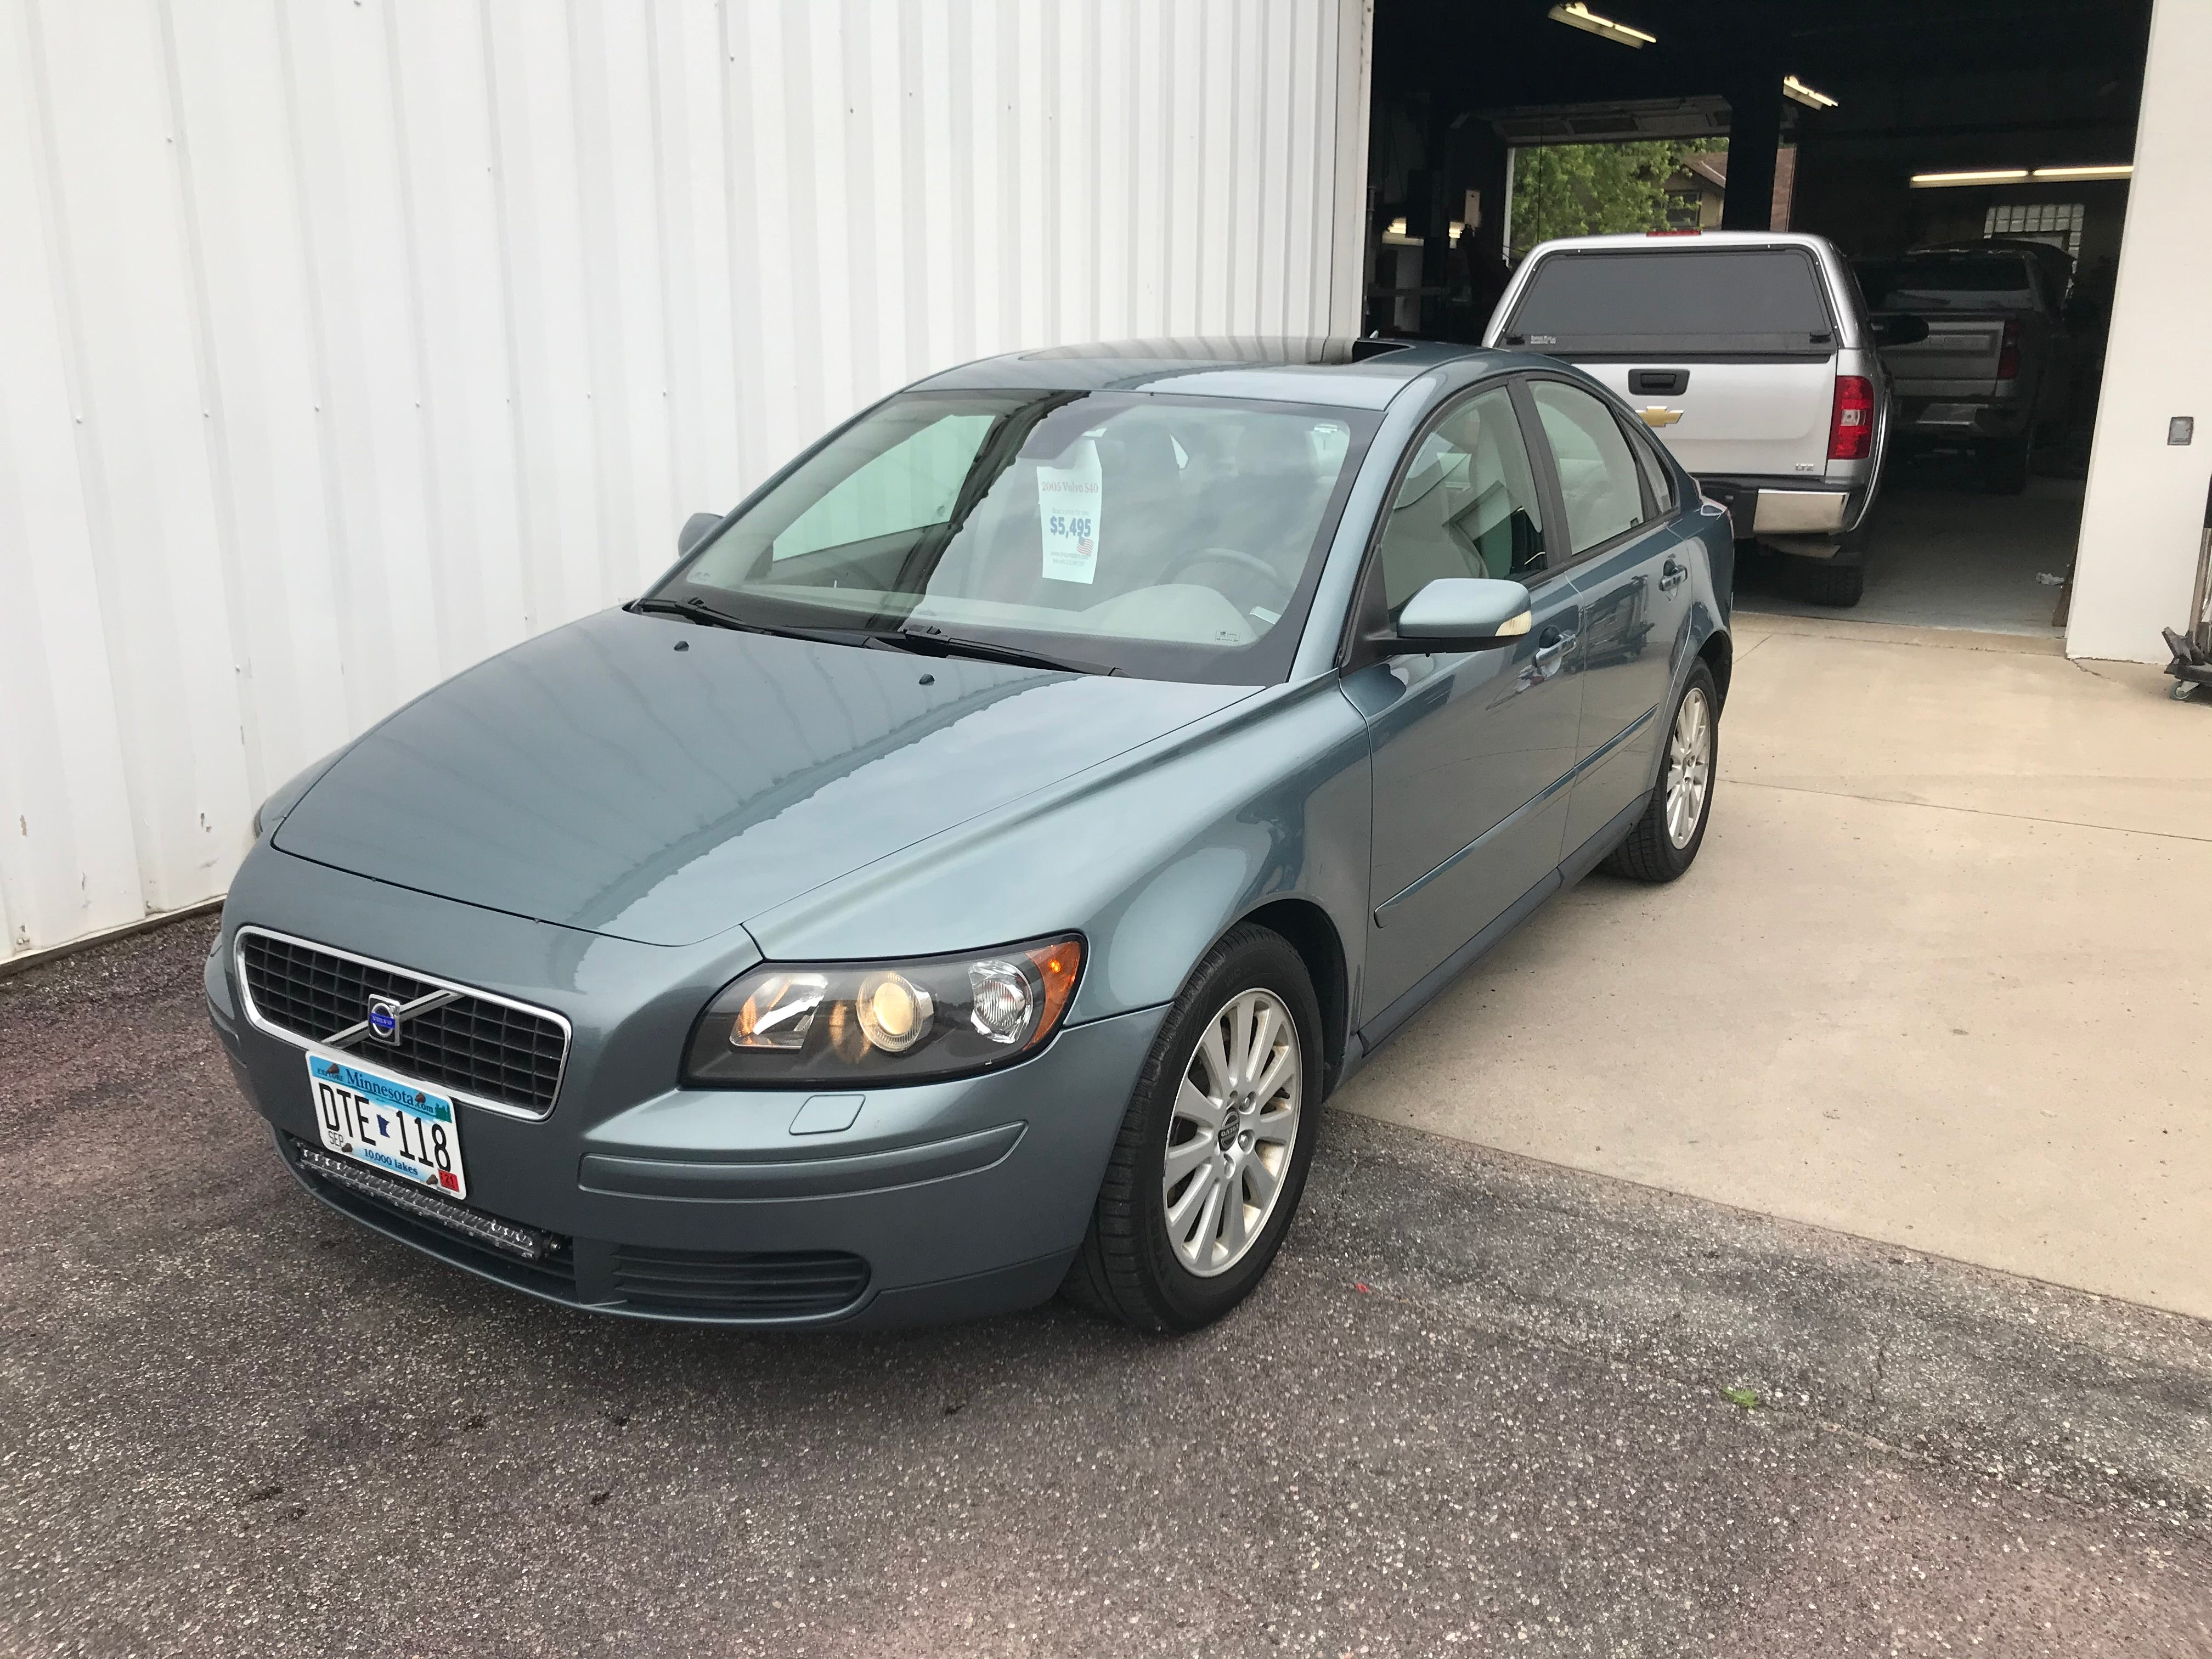 Used 2005 Volvo S40 2.4i with VIN YV1MS382252069099 for sale in Arlington, Minnesota